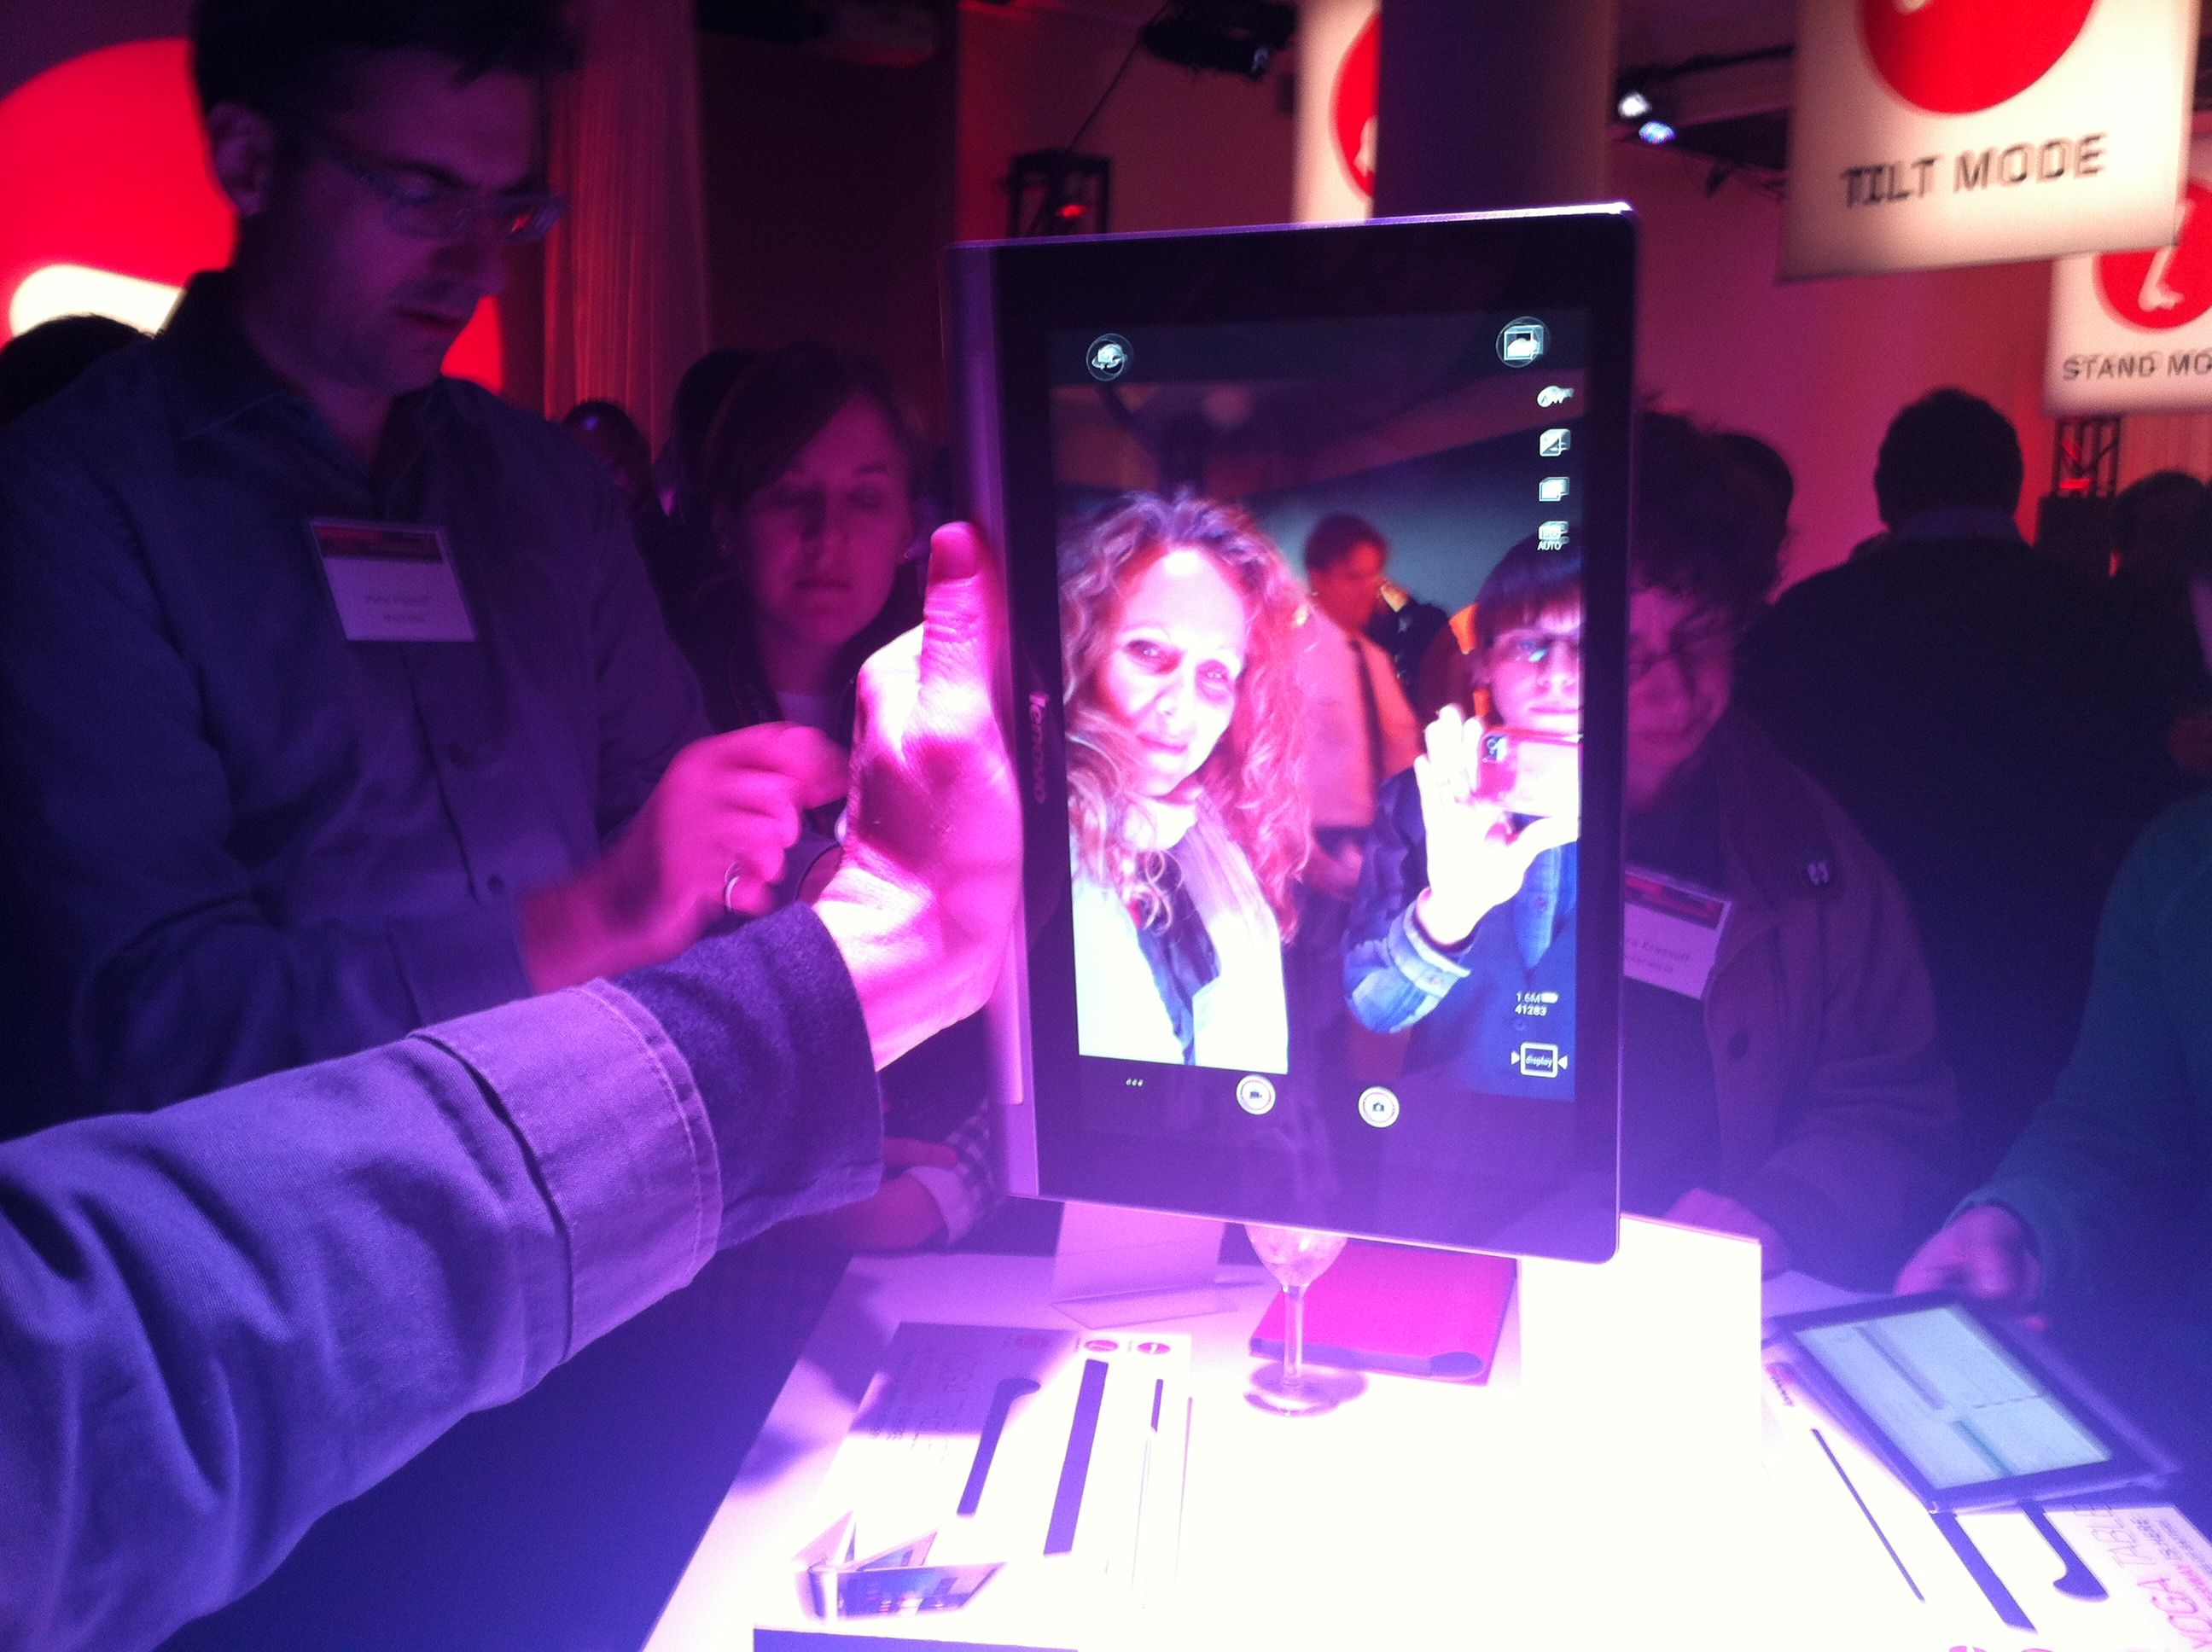 Lenovo Yoga 2 Tablet: Lightweight and Functional